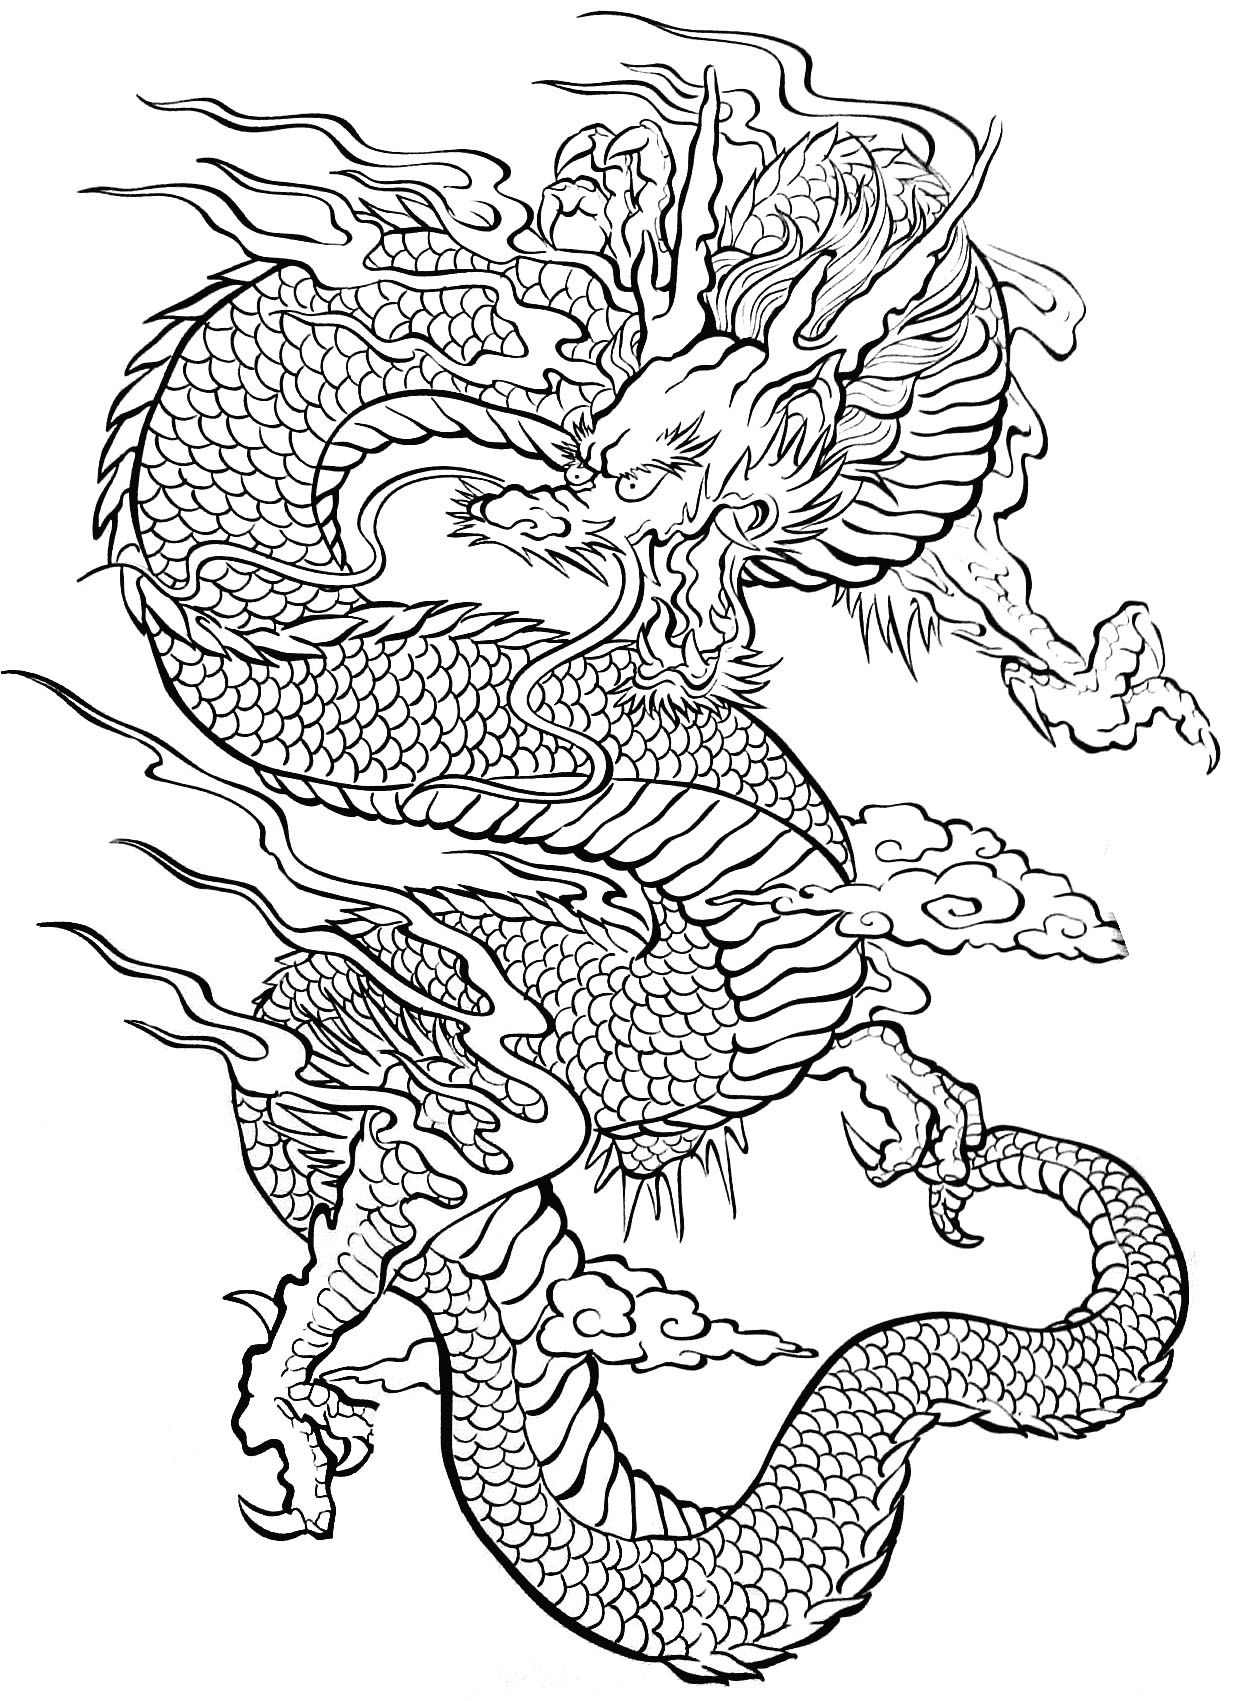 Tattoo Dragon - Tattoos Coloring Pages For Adults - Just tout Coloriage Dragon Chinois